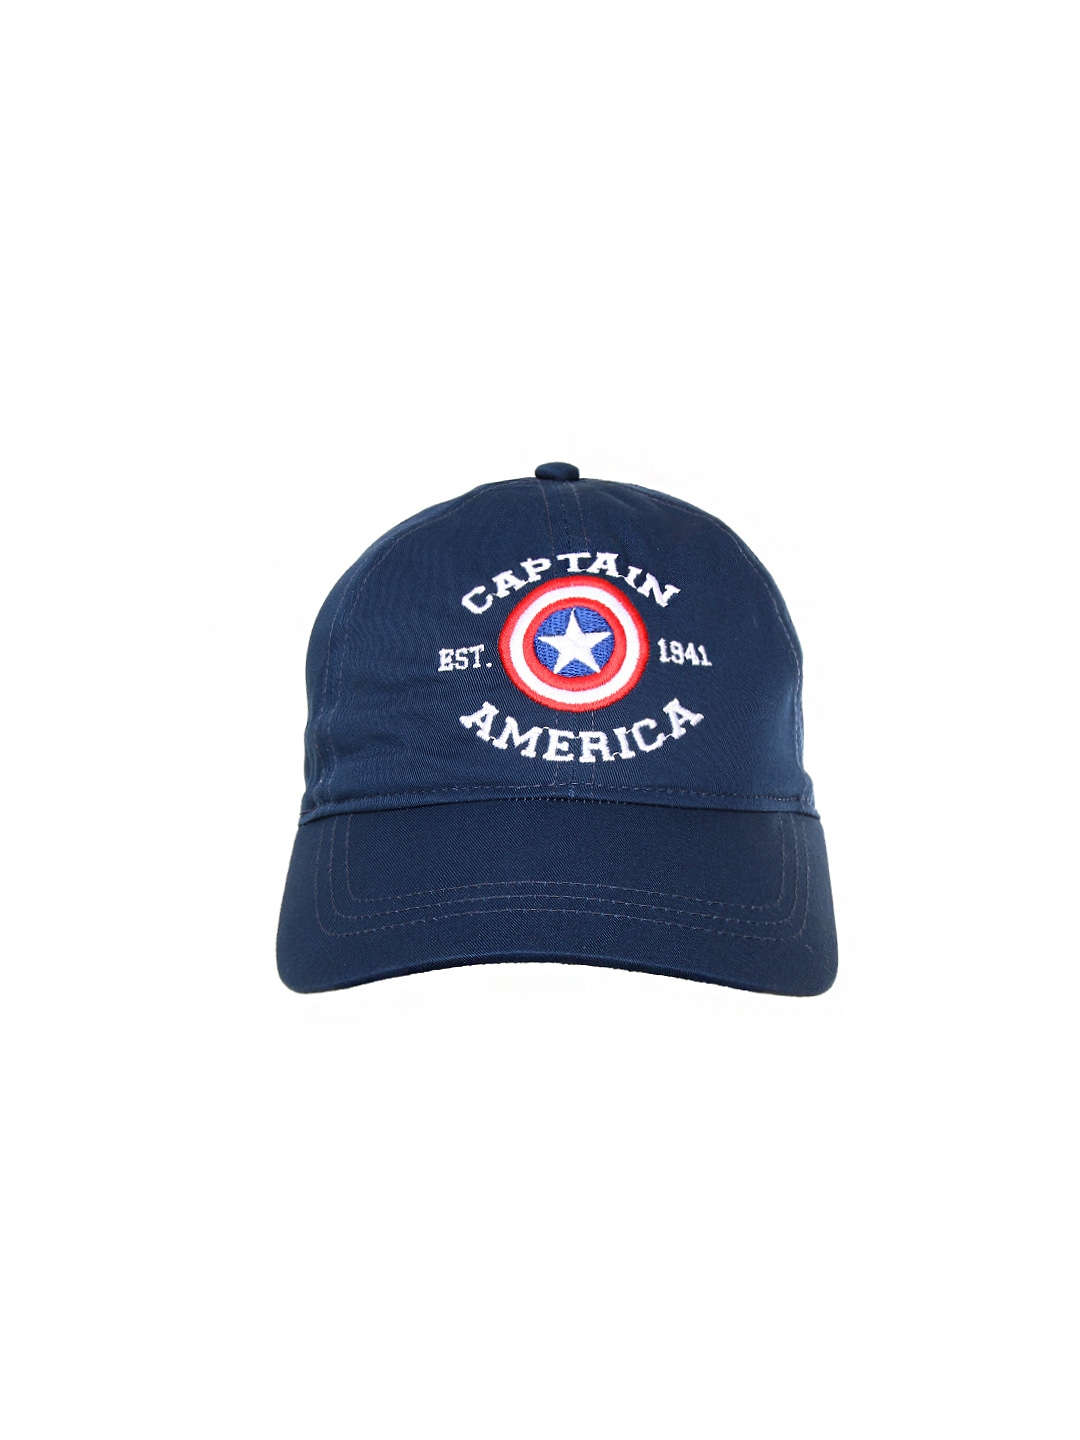 Caps - Buy Caps for Men 2bc23ea5a4e